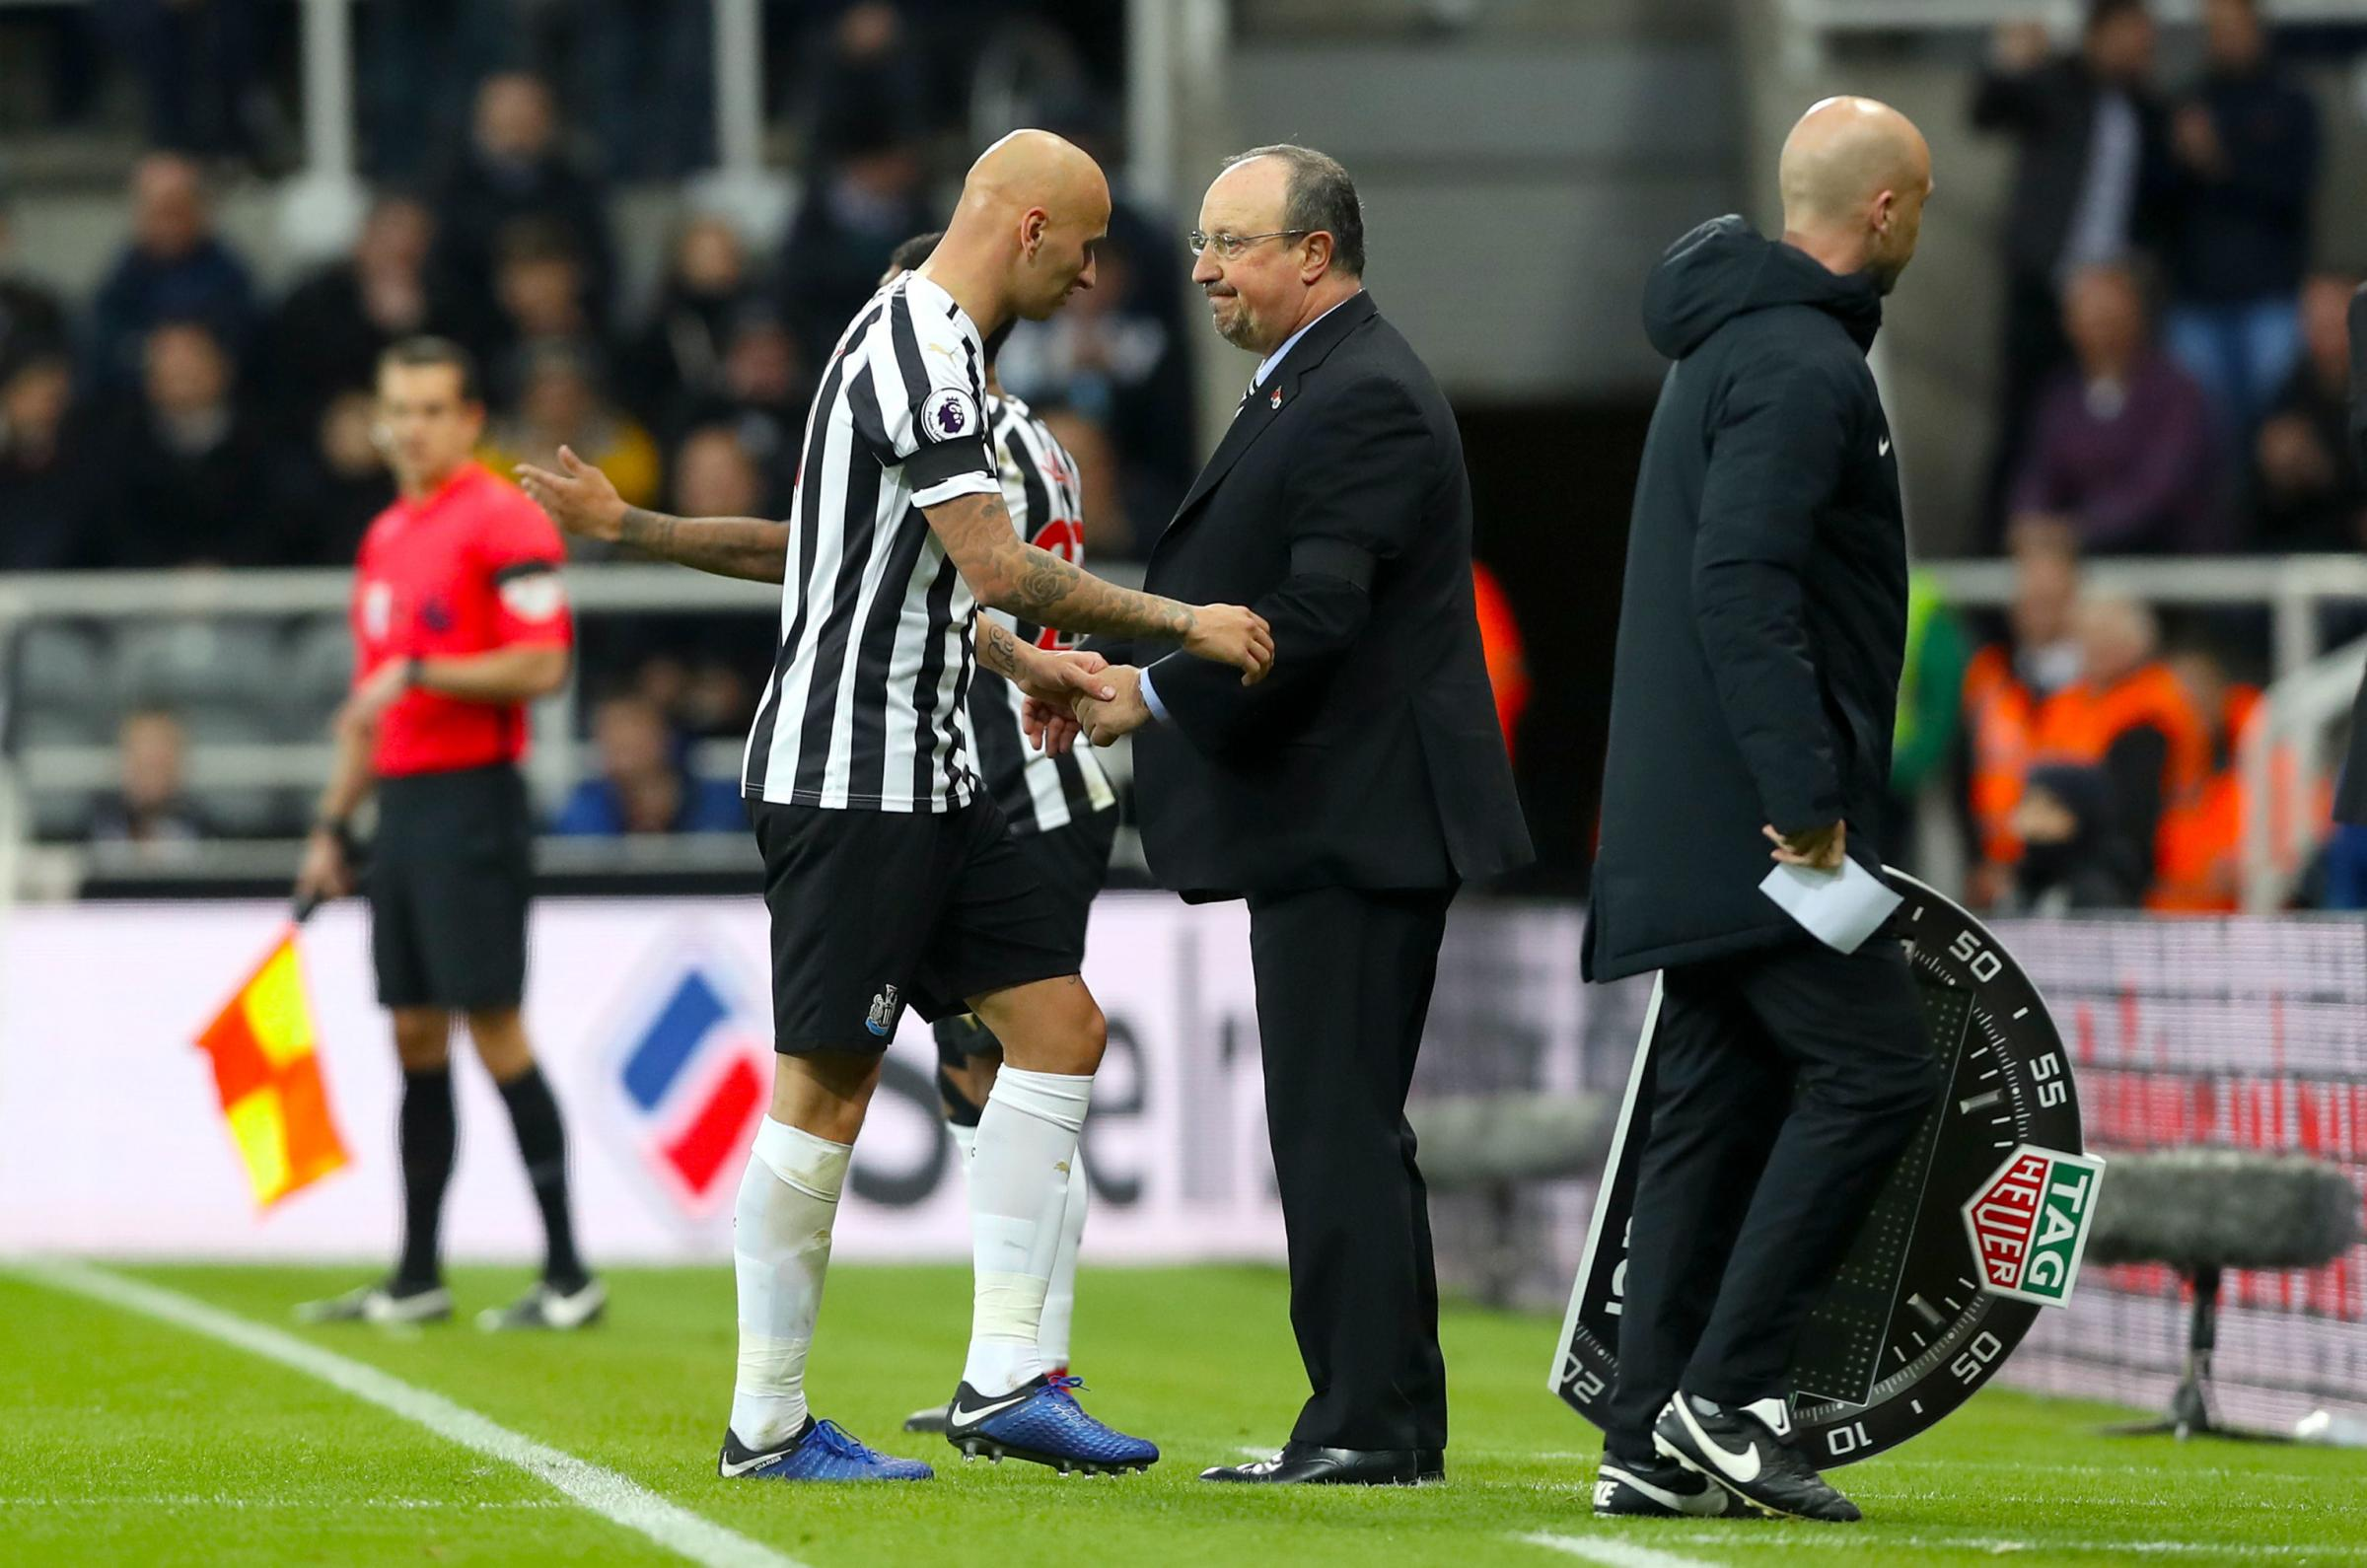 INJURY VICTIM: Jonjo Shelvey is a doubt for Newcastle's game against Bournemouth this weekend after suffering a muscular injury against Watford